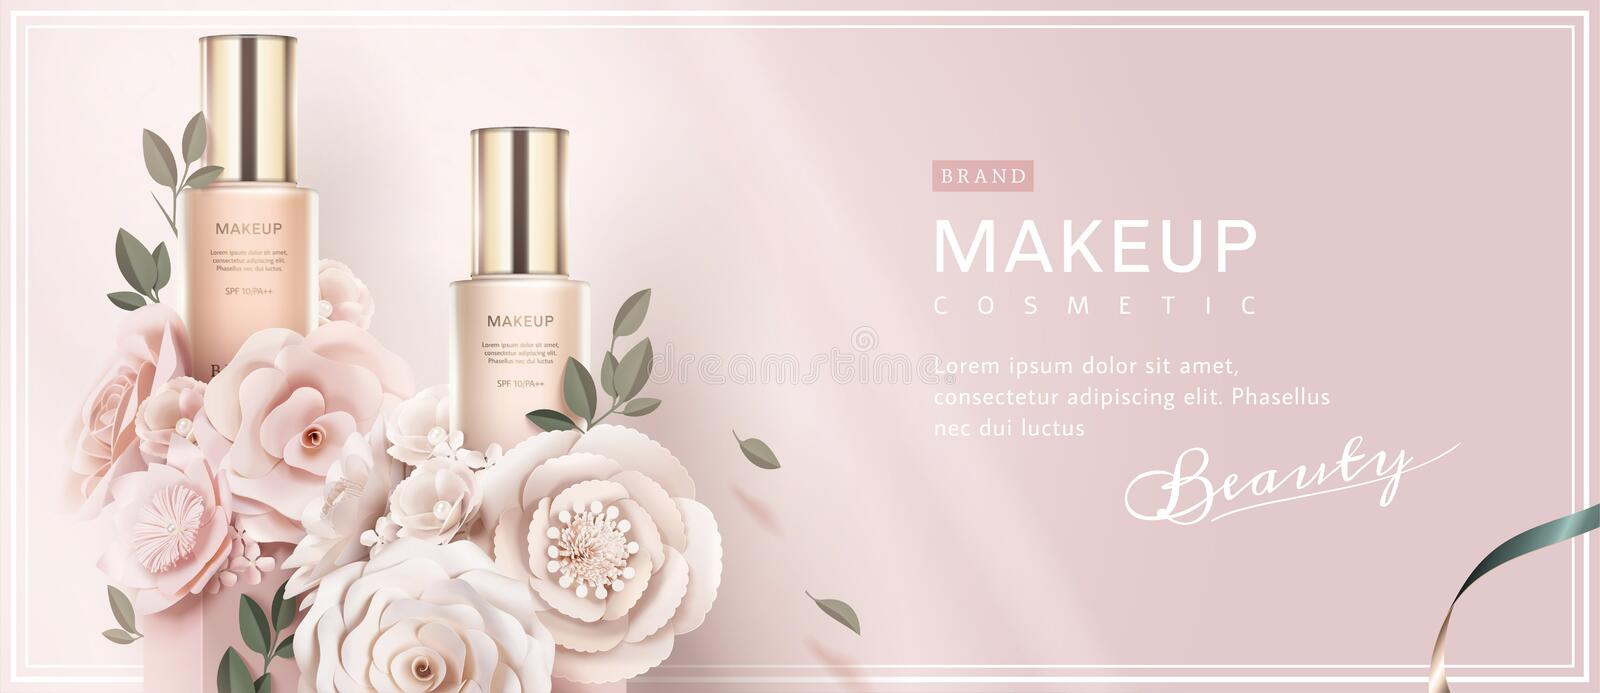 Foundation banner ads. With paper art flowers on light pink background in 3d illustration stock illustration